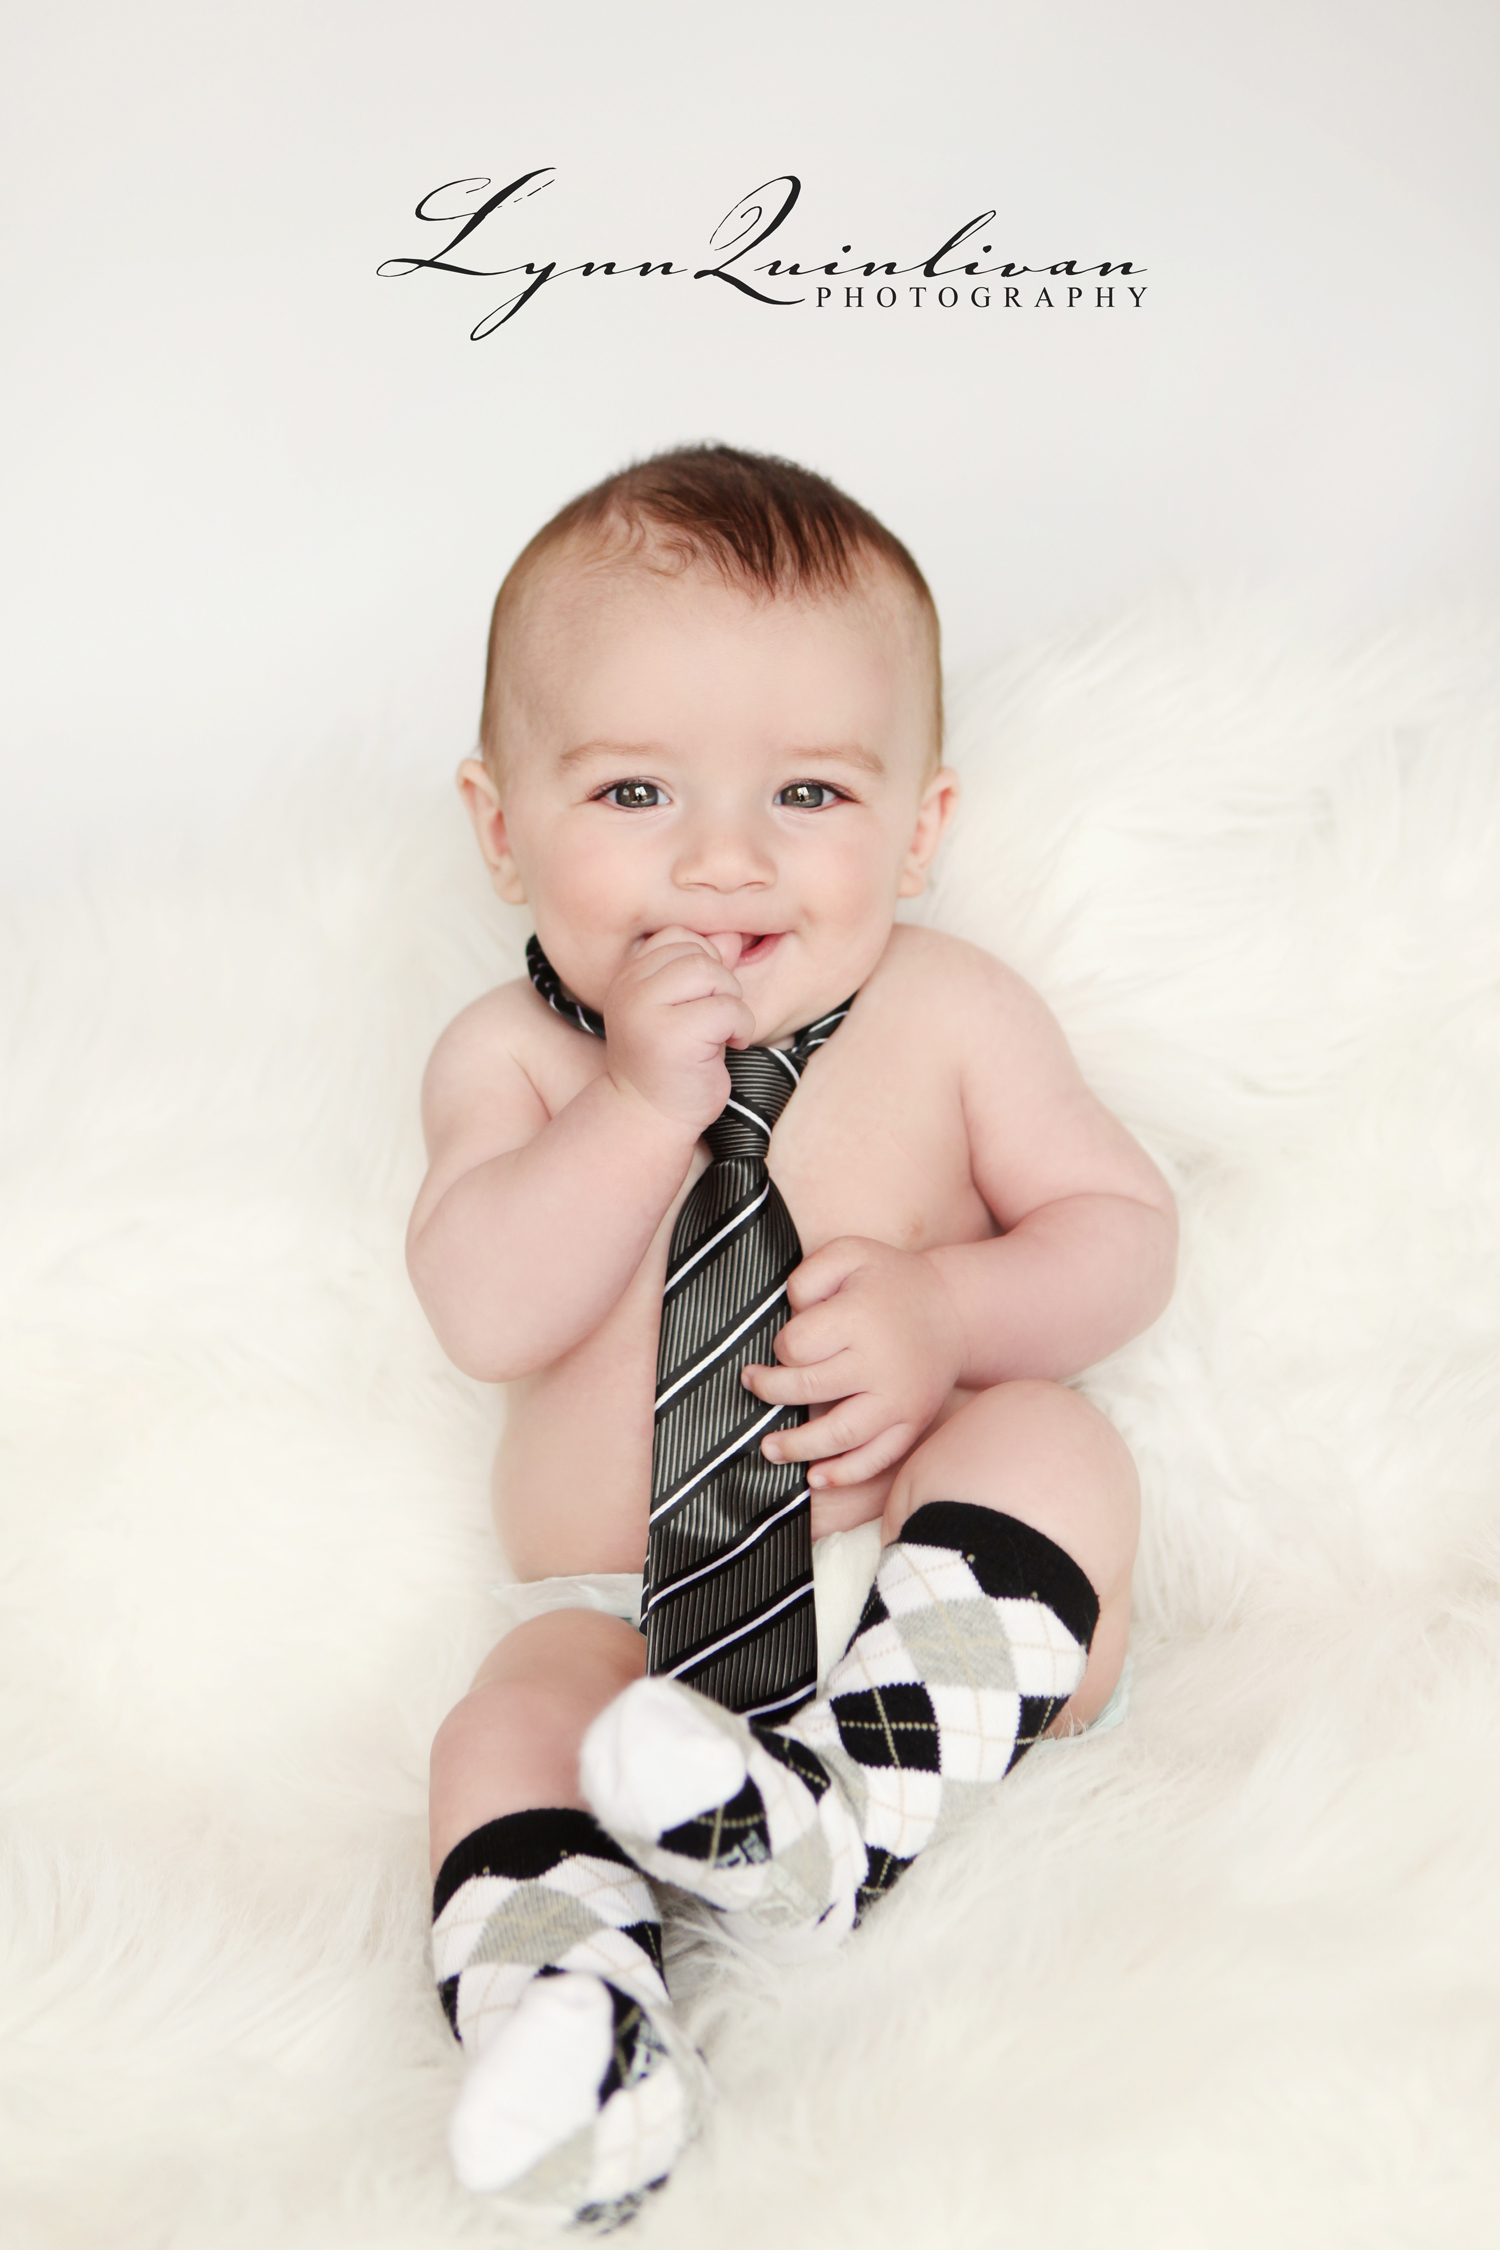 four month old baby c massachusetts photographer. Black Bedroom Furniture Sets. Home Design Ideas